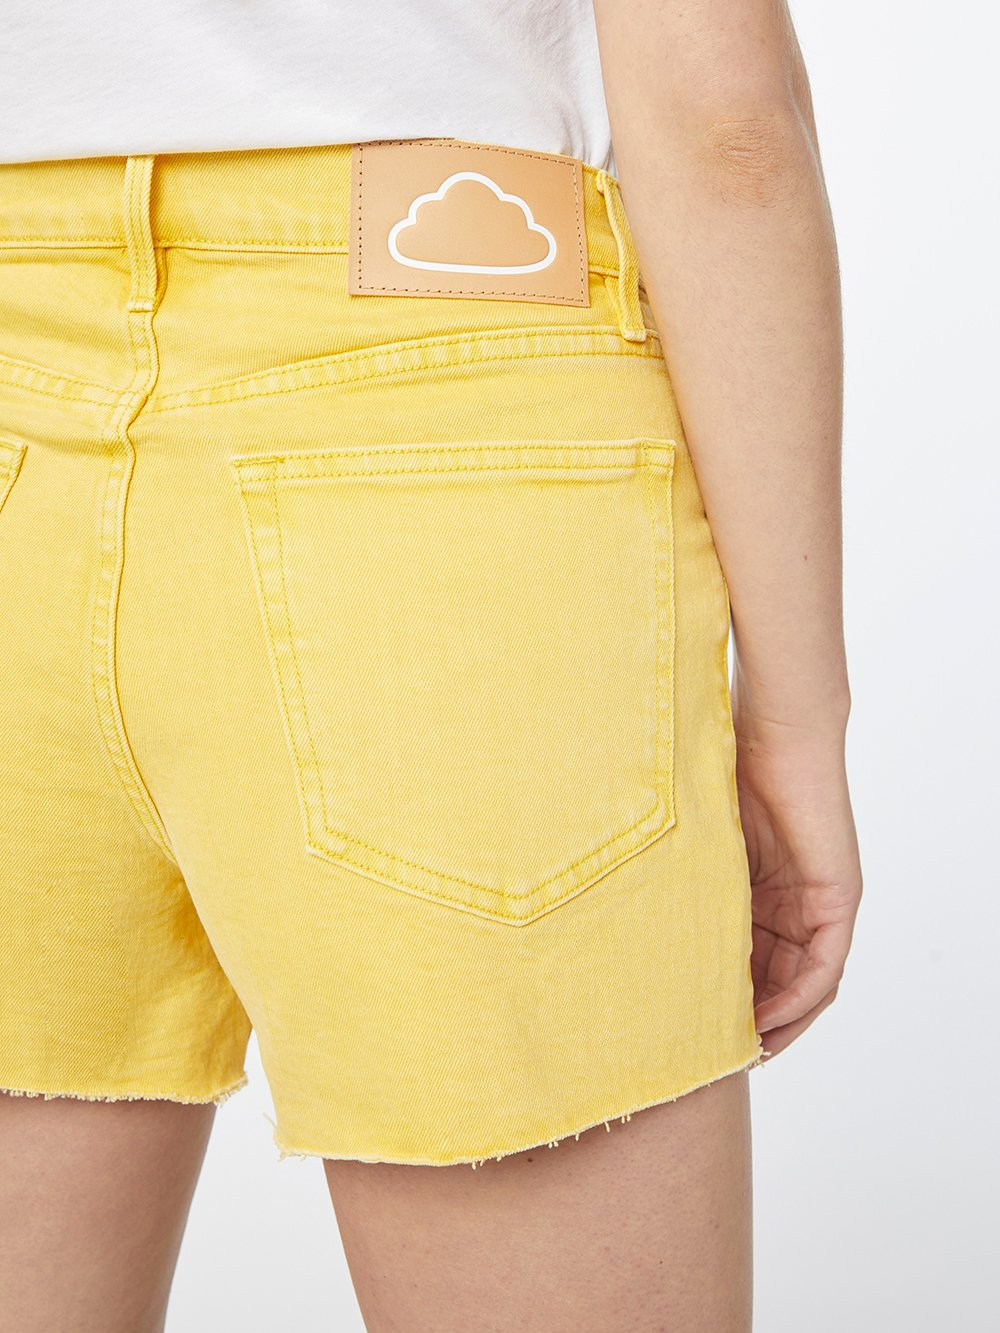 shorts detail view 2 alt:hover